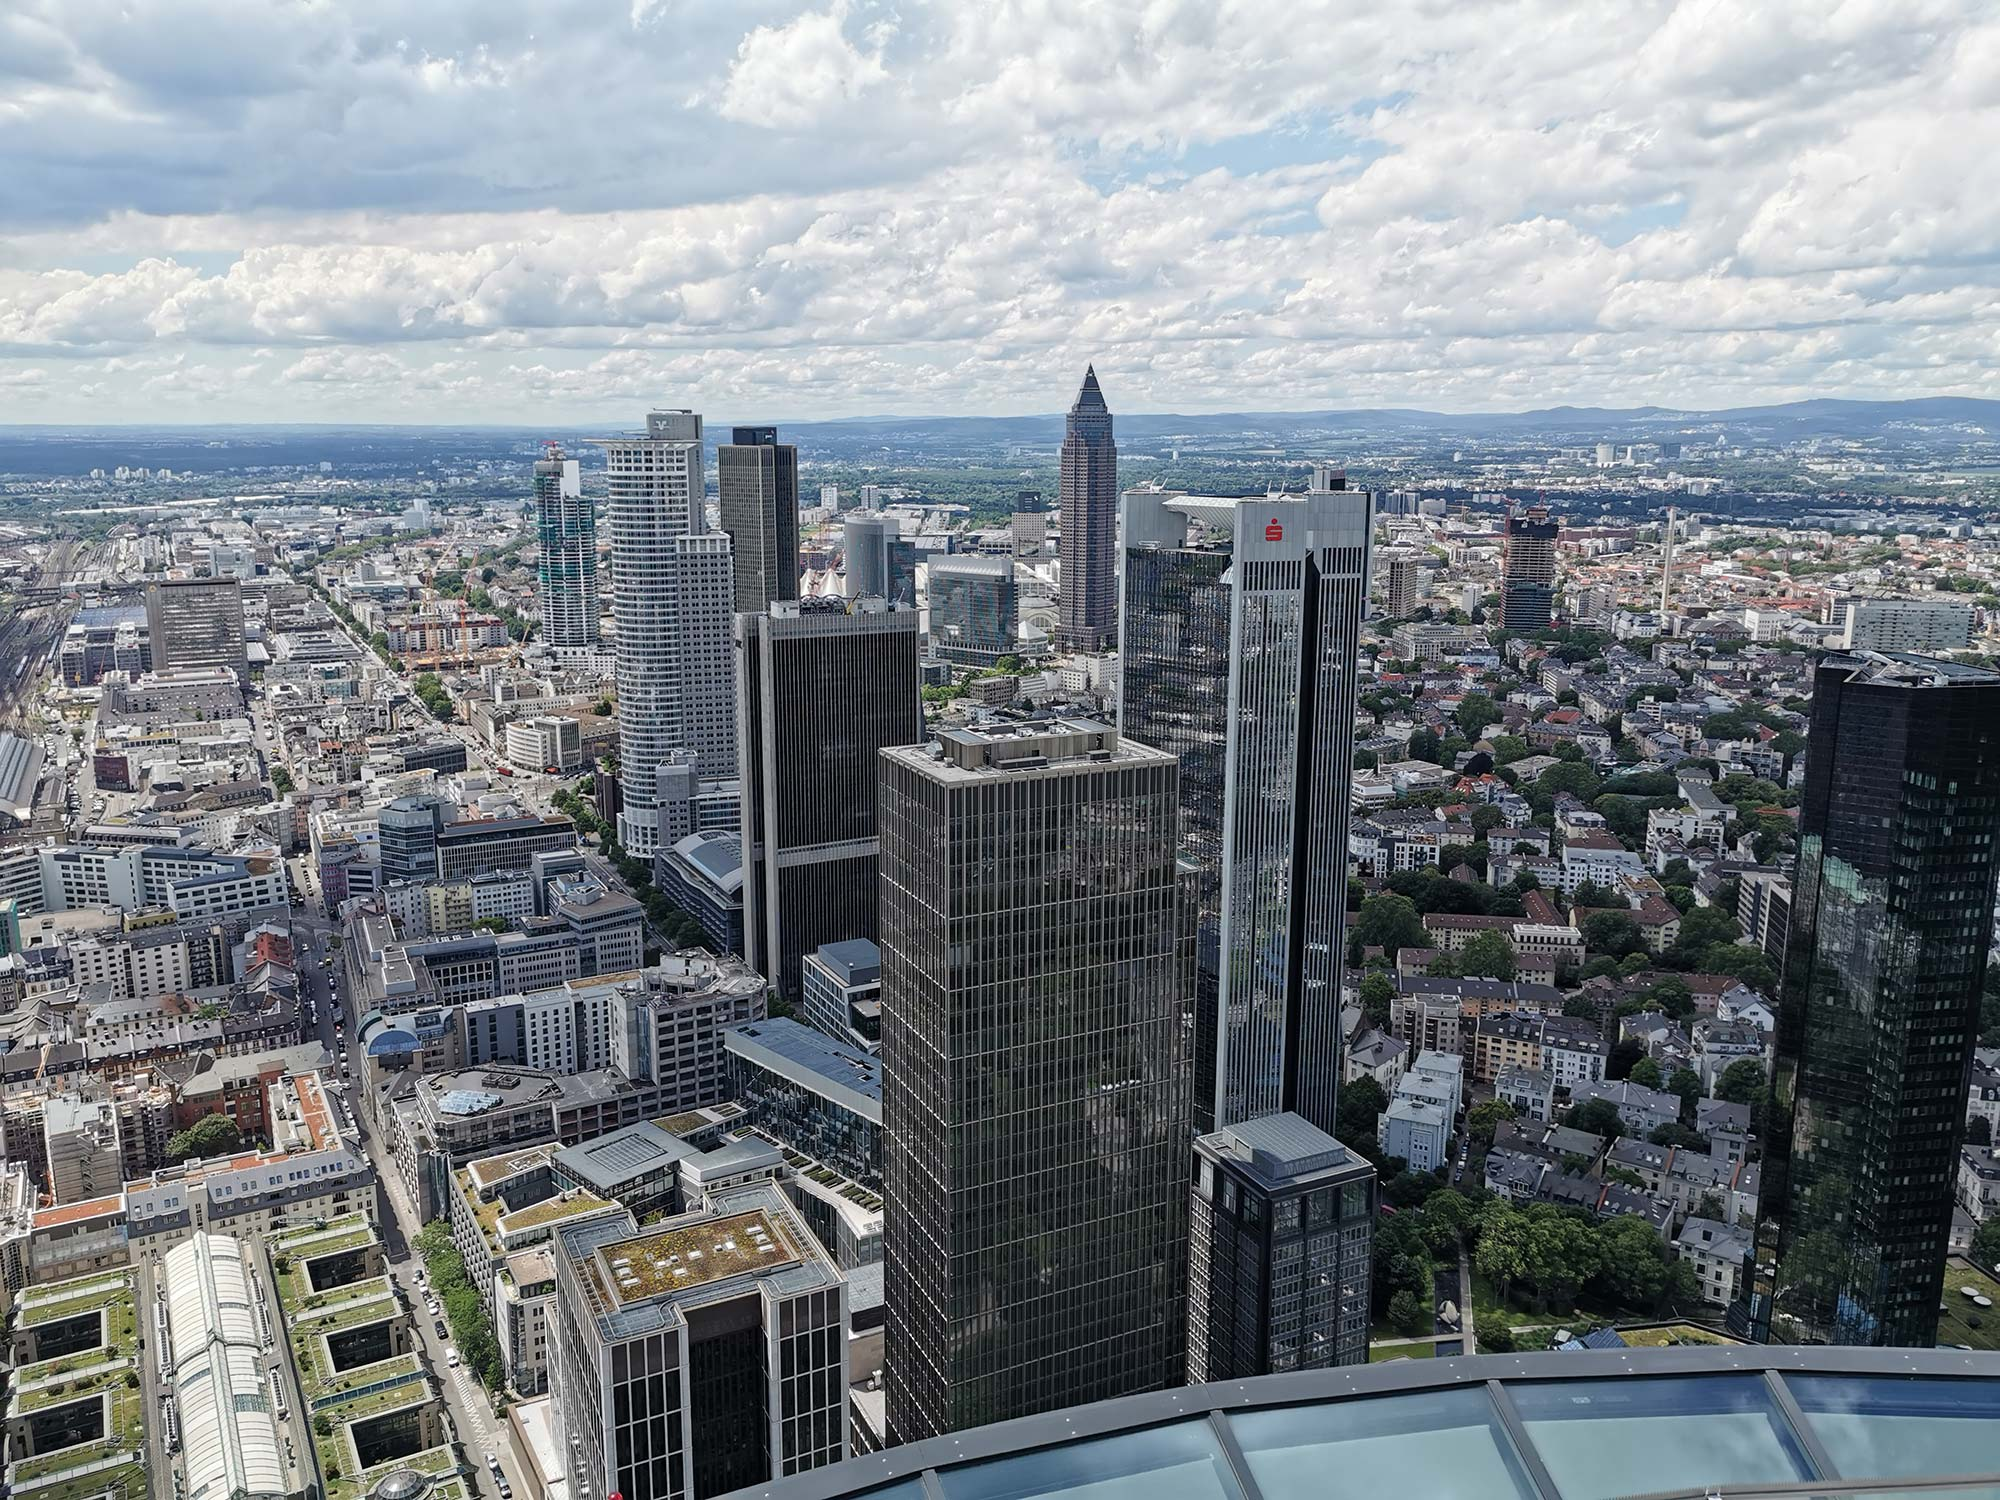 View from MAIN TOWER over Frankfurt - observation point - sightseeing Frankfurt - observation deck with panorama view